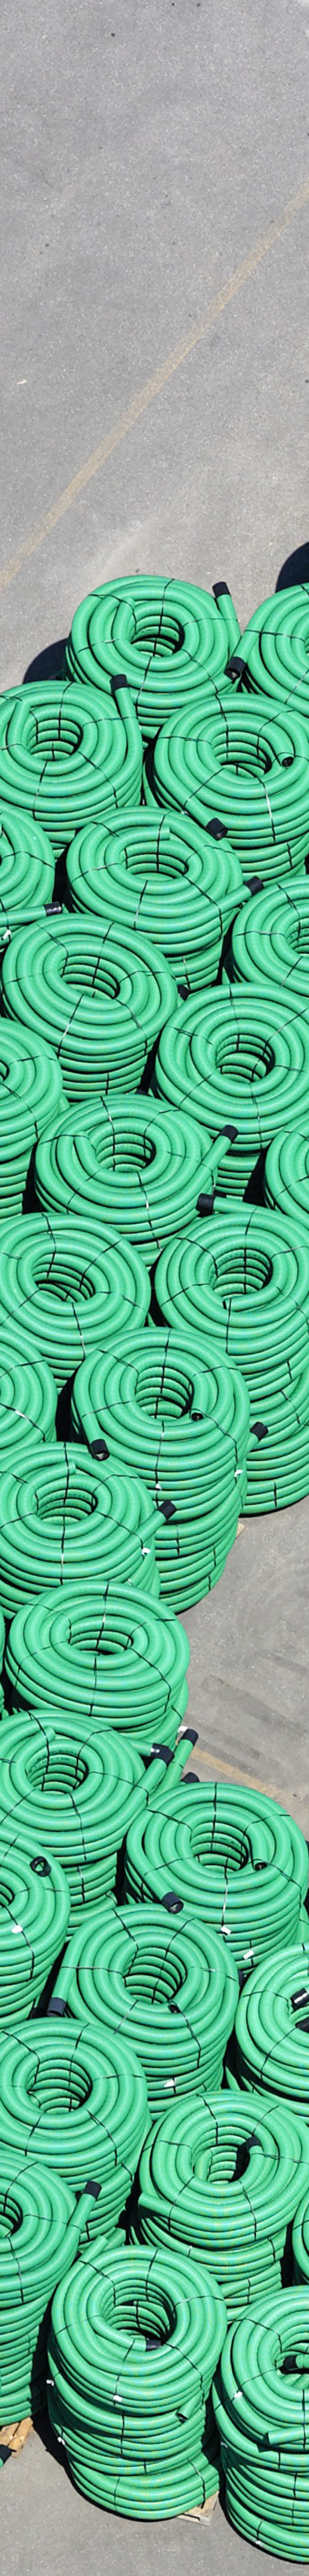 Aerial view of a storage area for plastic pipes made of polyethylene - Klaus Leidorf Aerial Photography